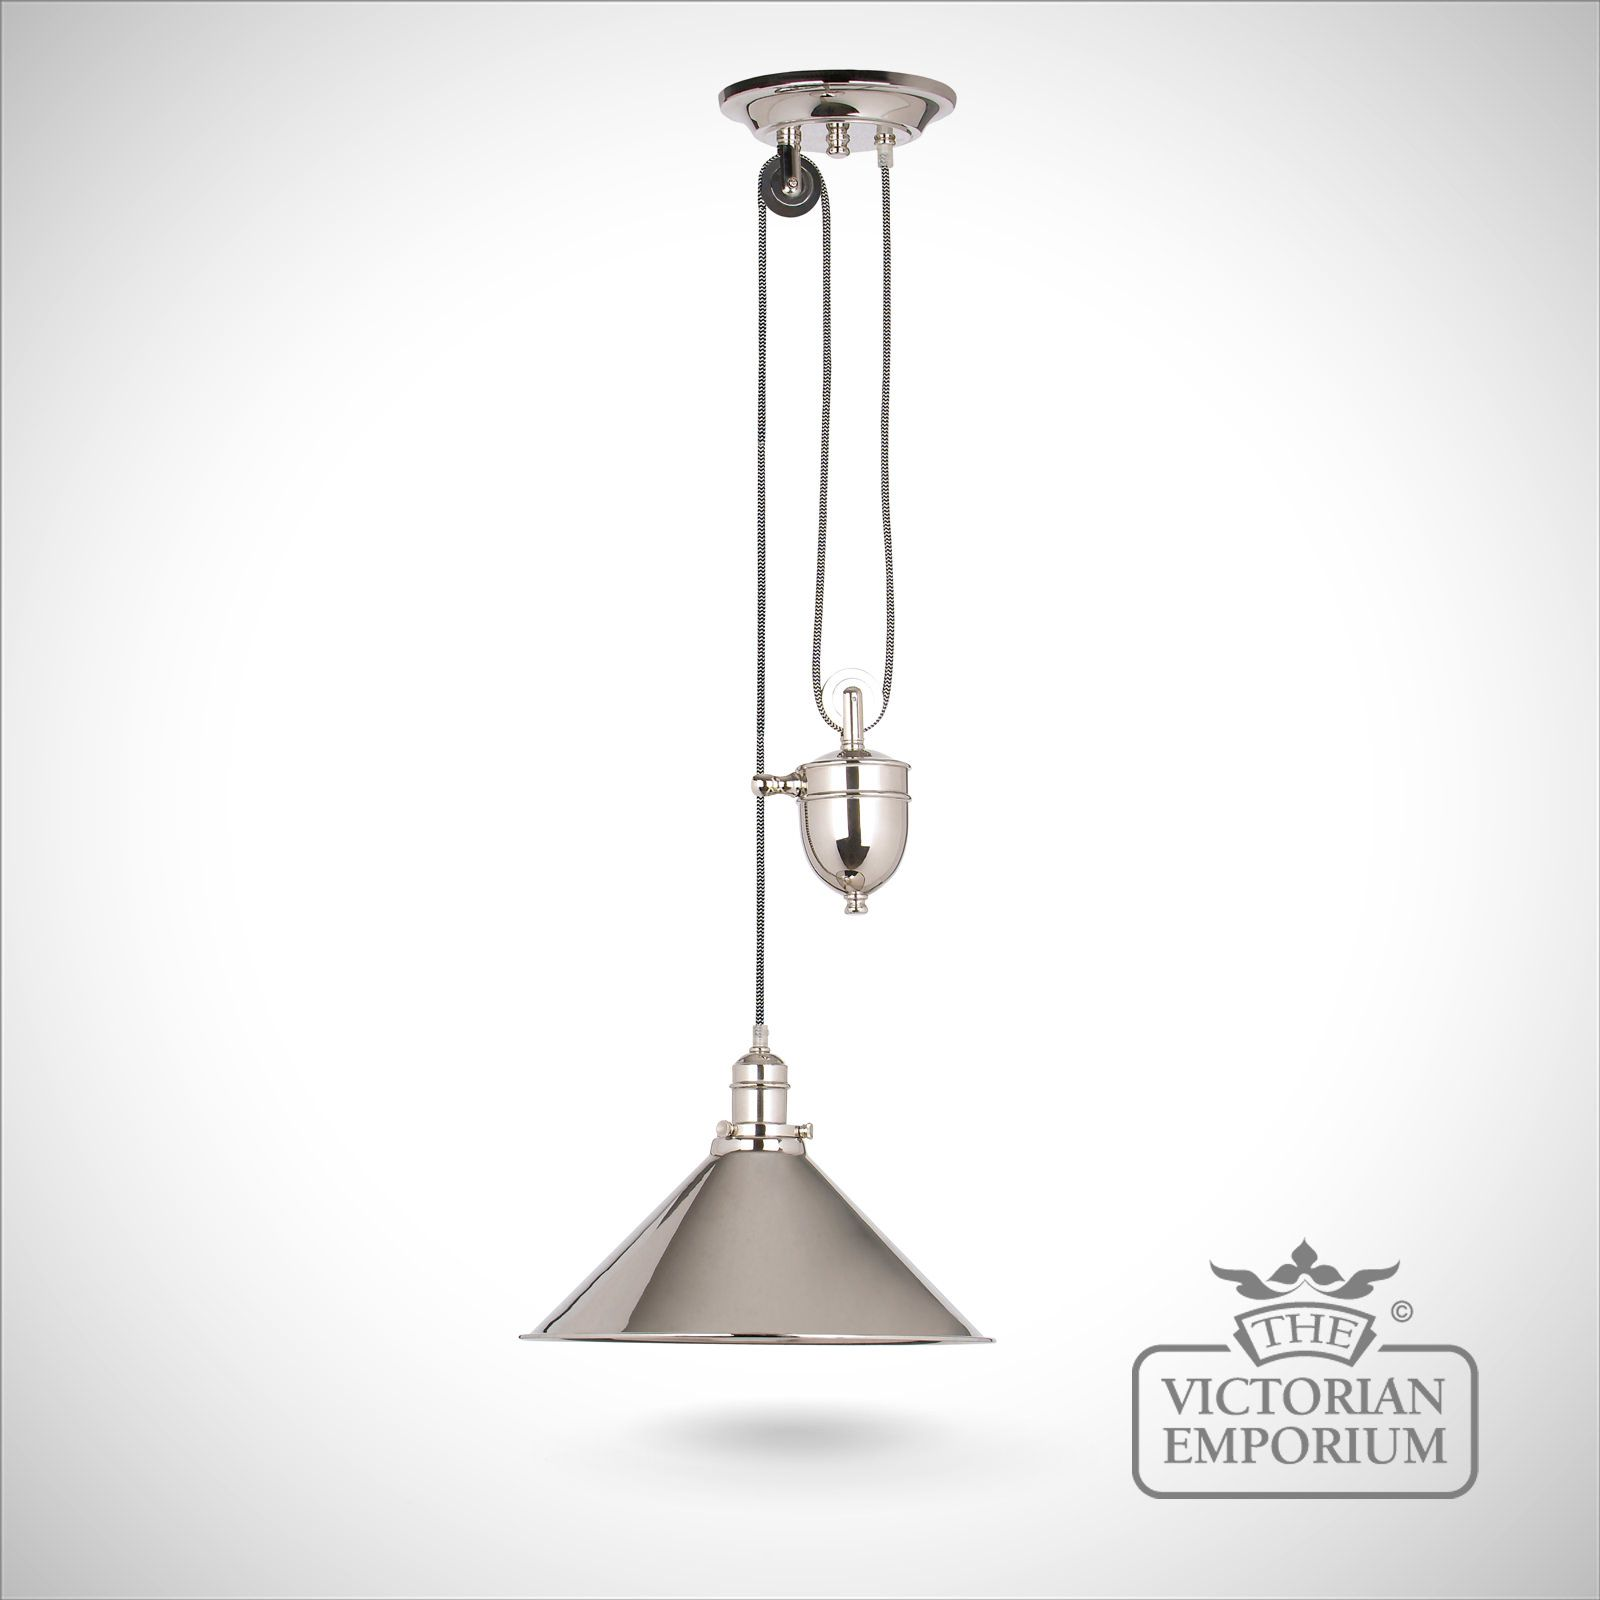 Provence rise and fall light in polished nickel